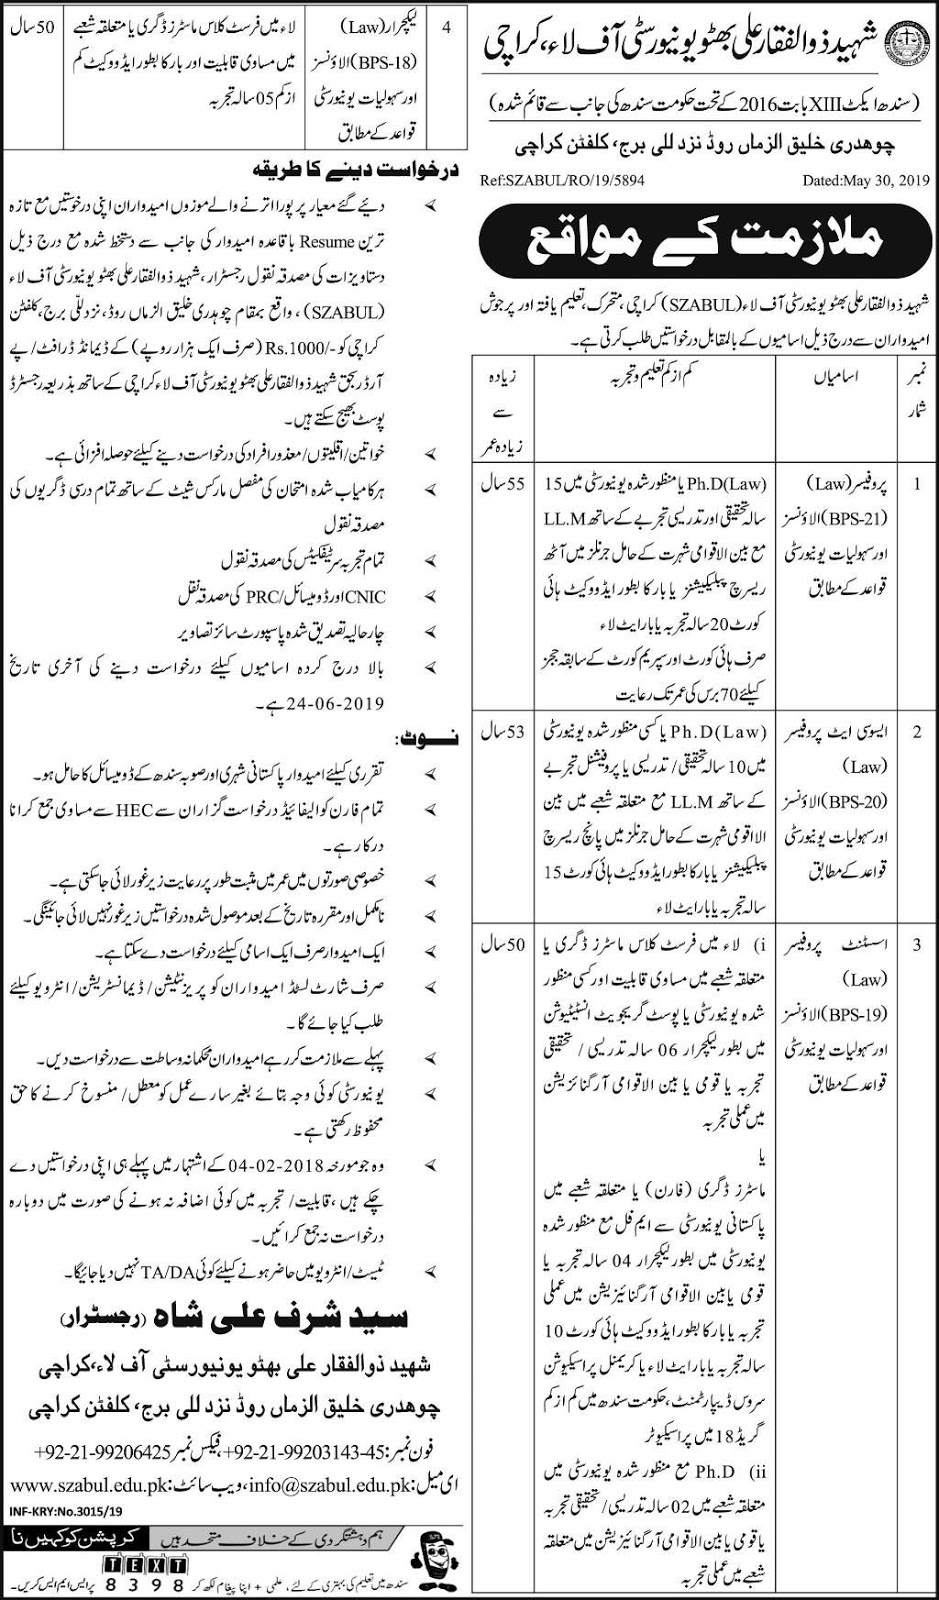 Jobs in Shaheed Zulfiqar Ali Bhutto University of Law Karachi 09 June 2019